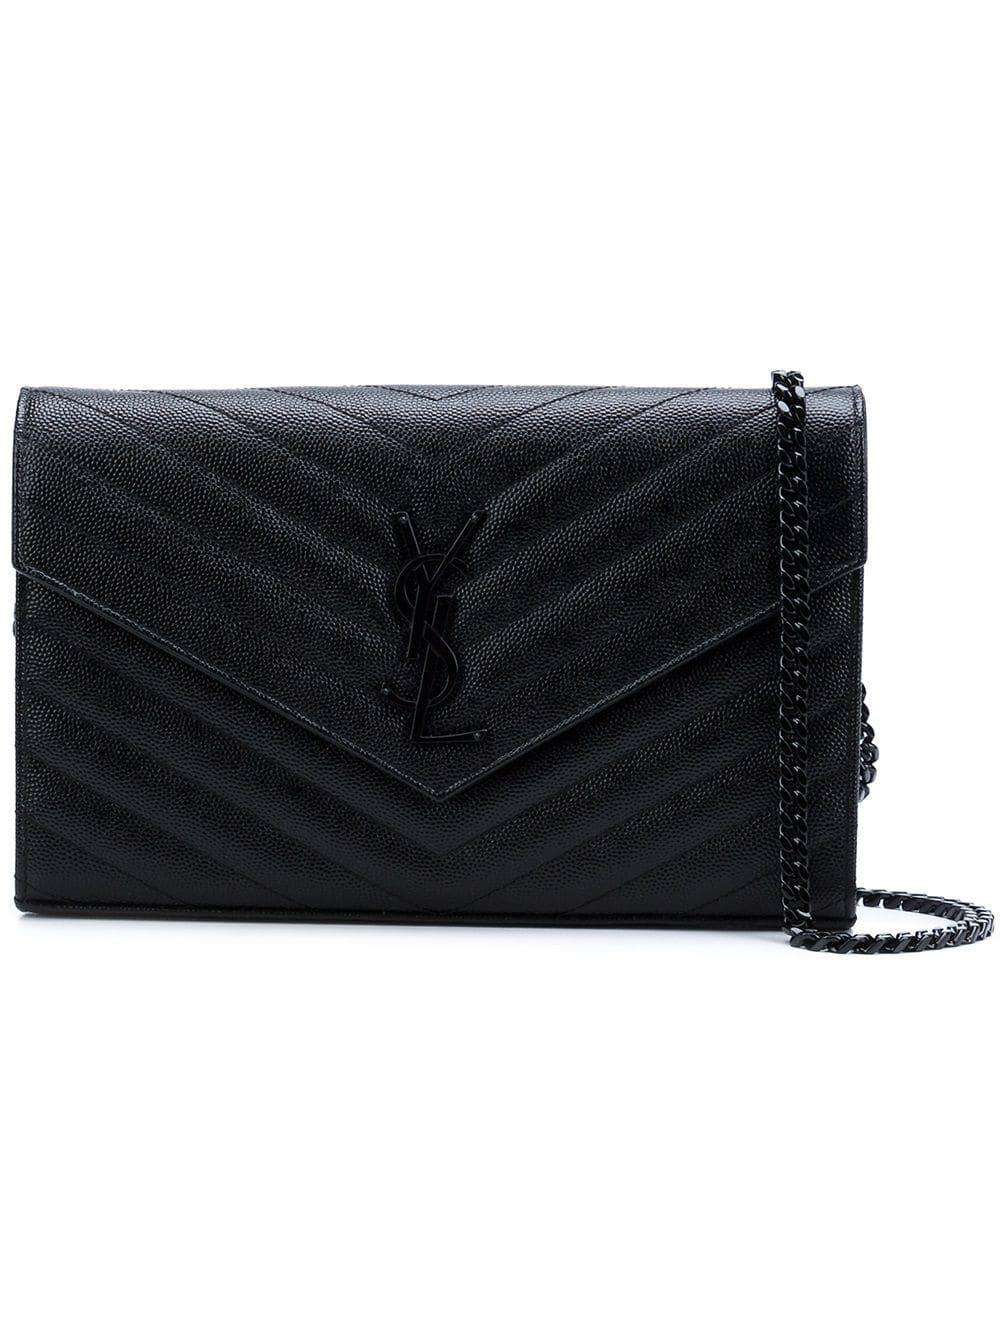 Leather Wallet On Chain Item # 377828BOW08-R20